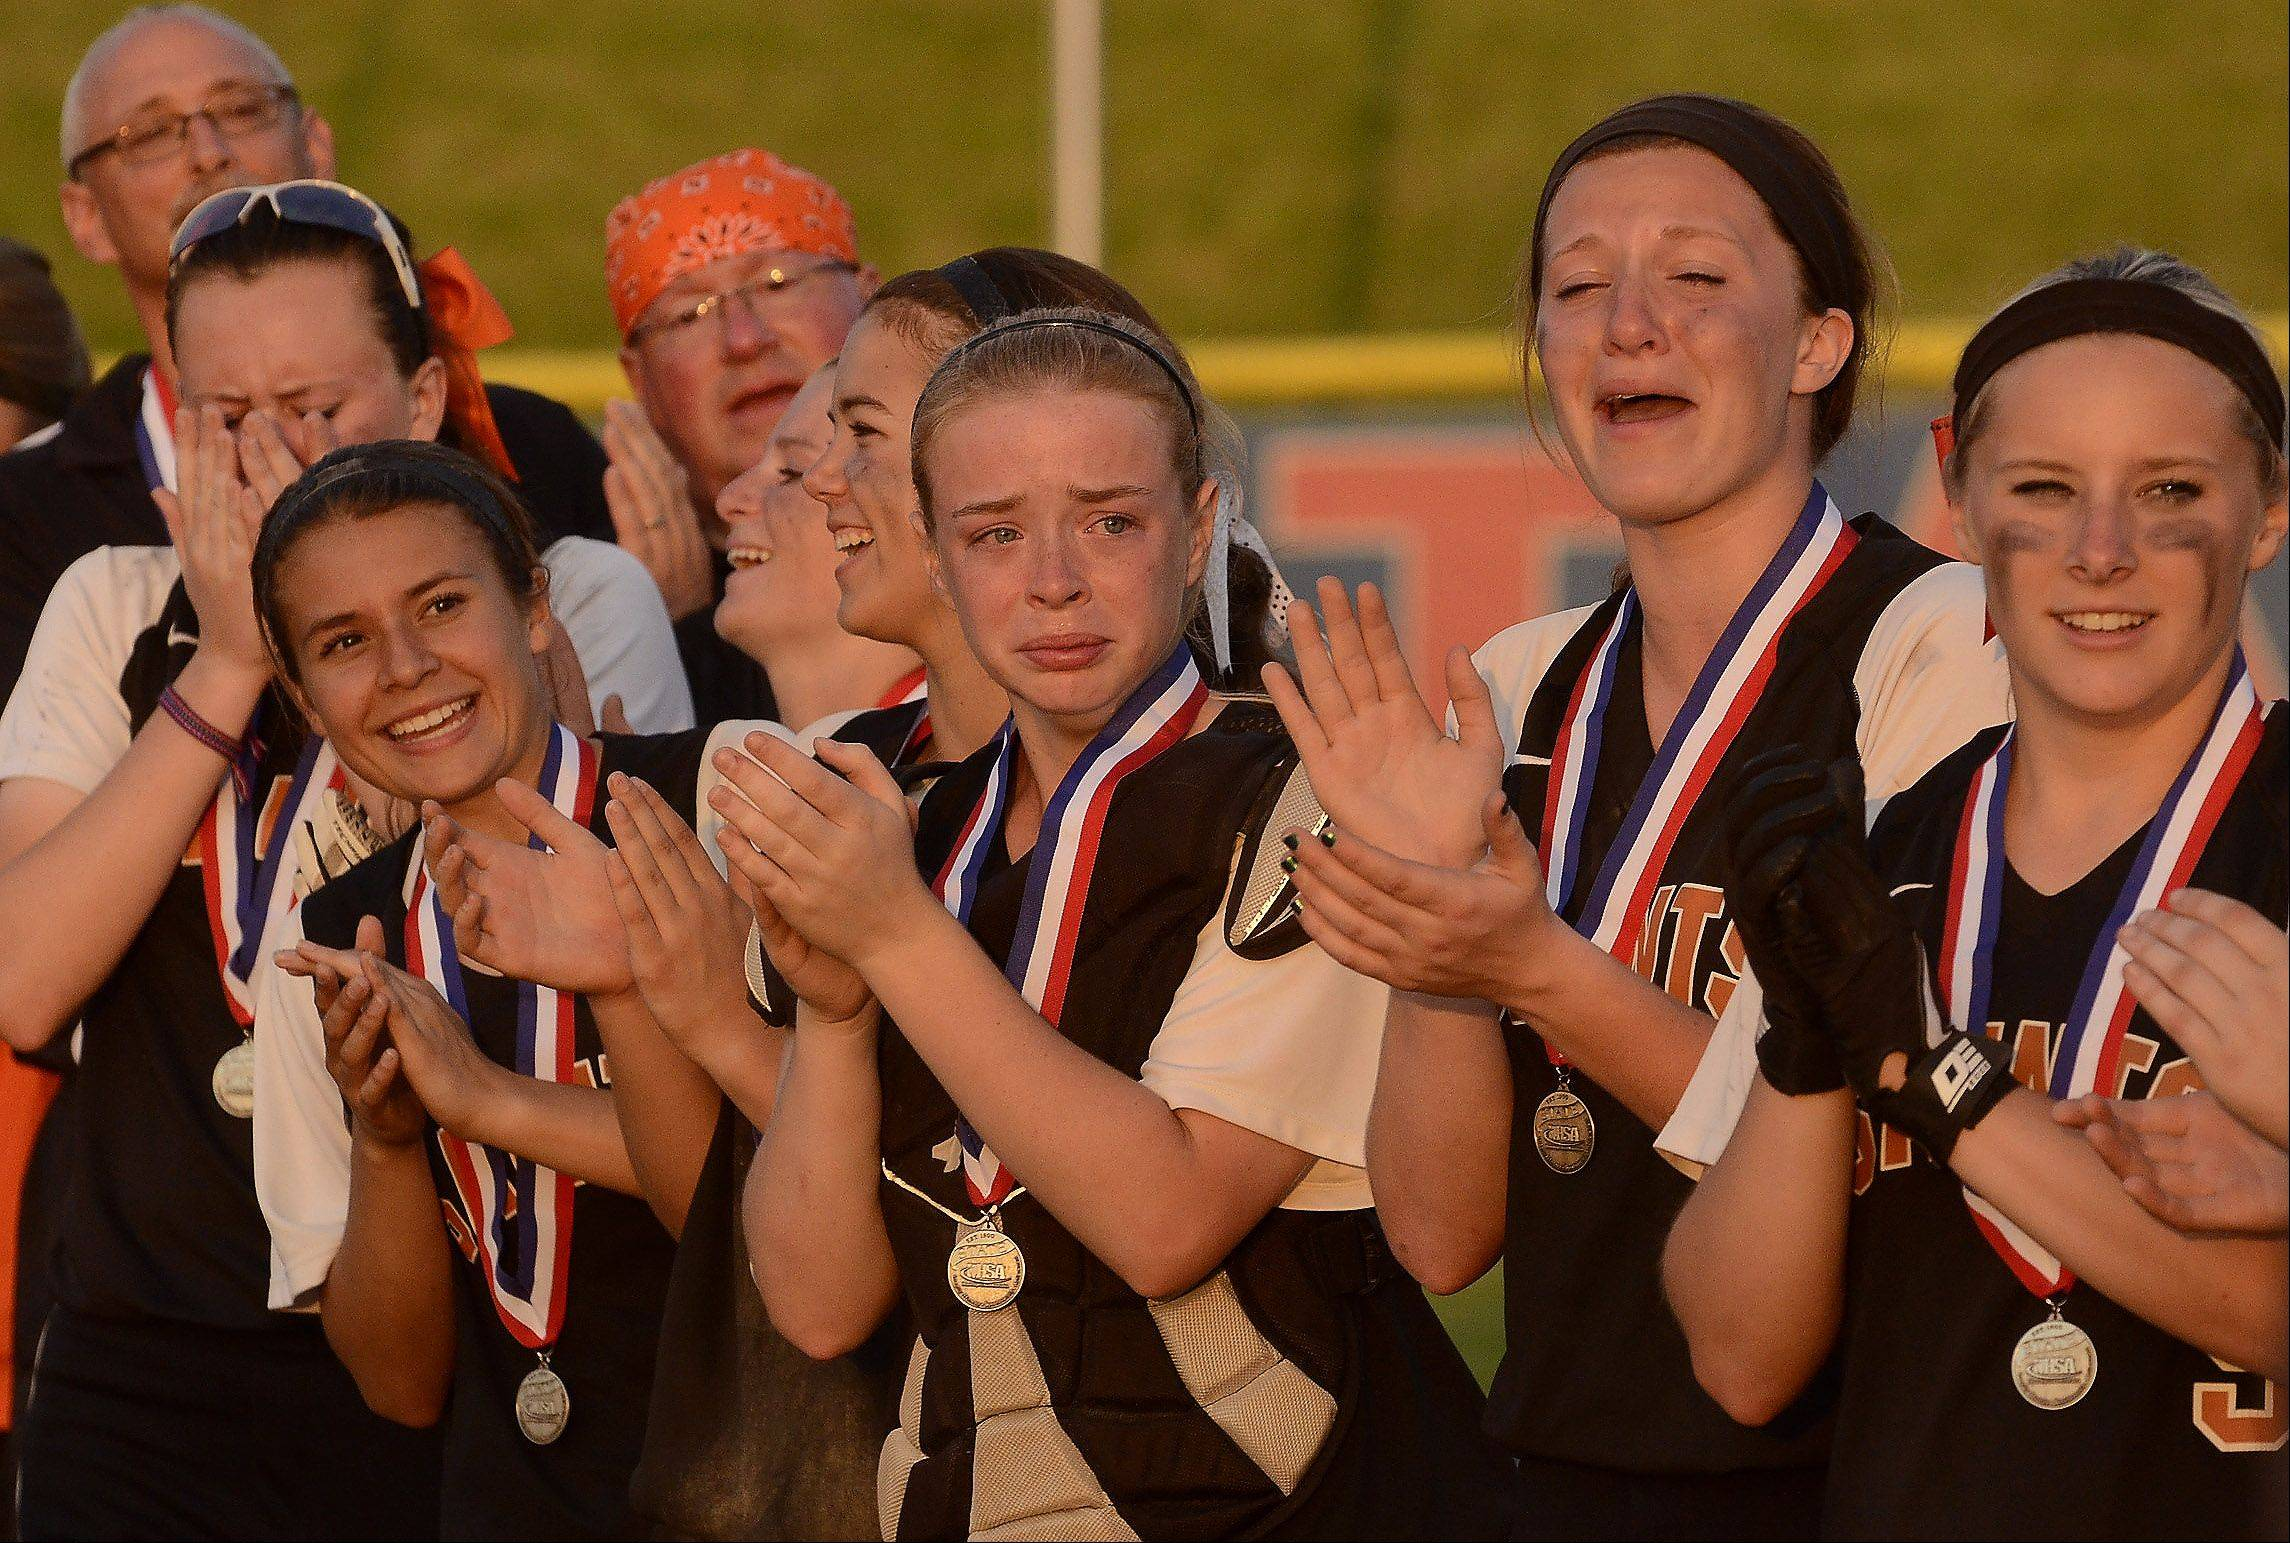 Among tears and smiles, St. Charles East players receive their 2nd place medals after losing to Minooka in theClass 4A softball championship game.